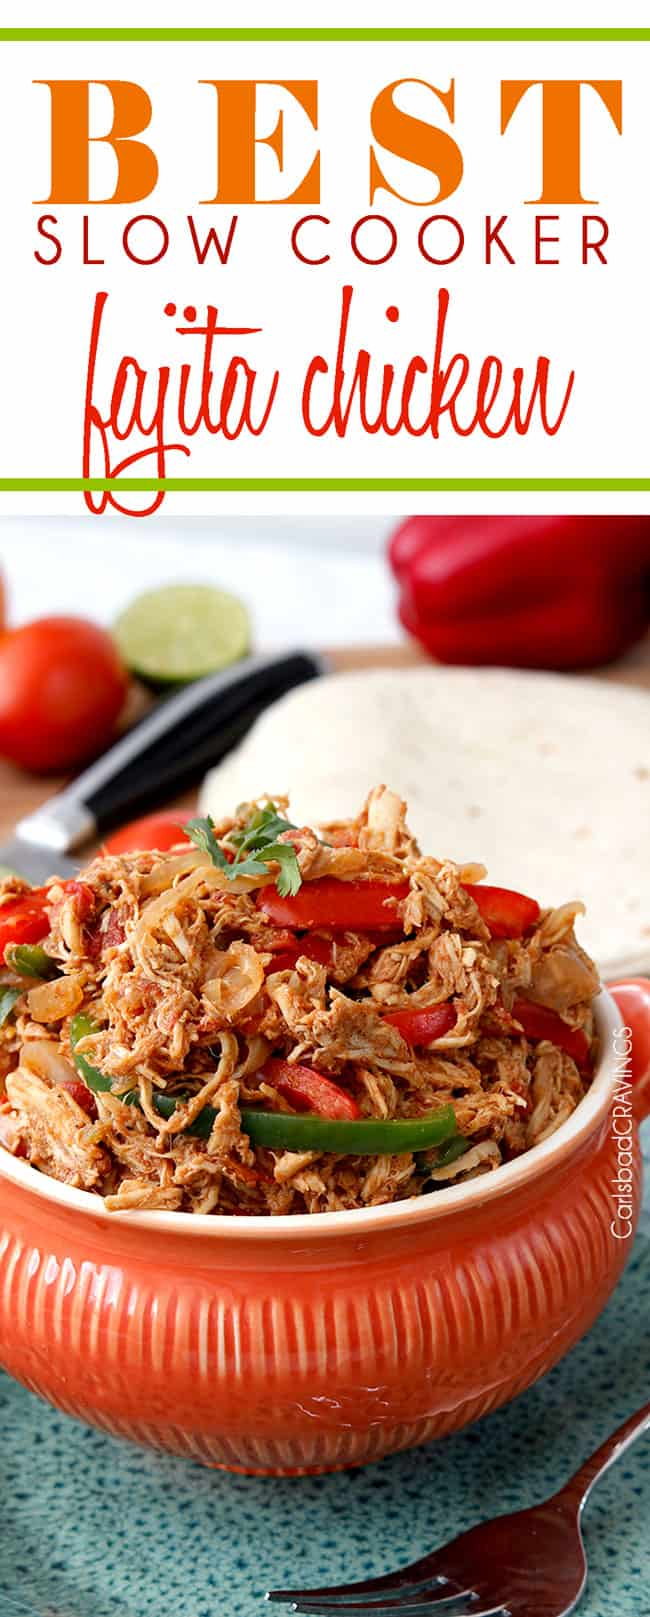 crock pot chicken fajitas with chicken, bell peppers and onions in an orange serving bowl